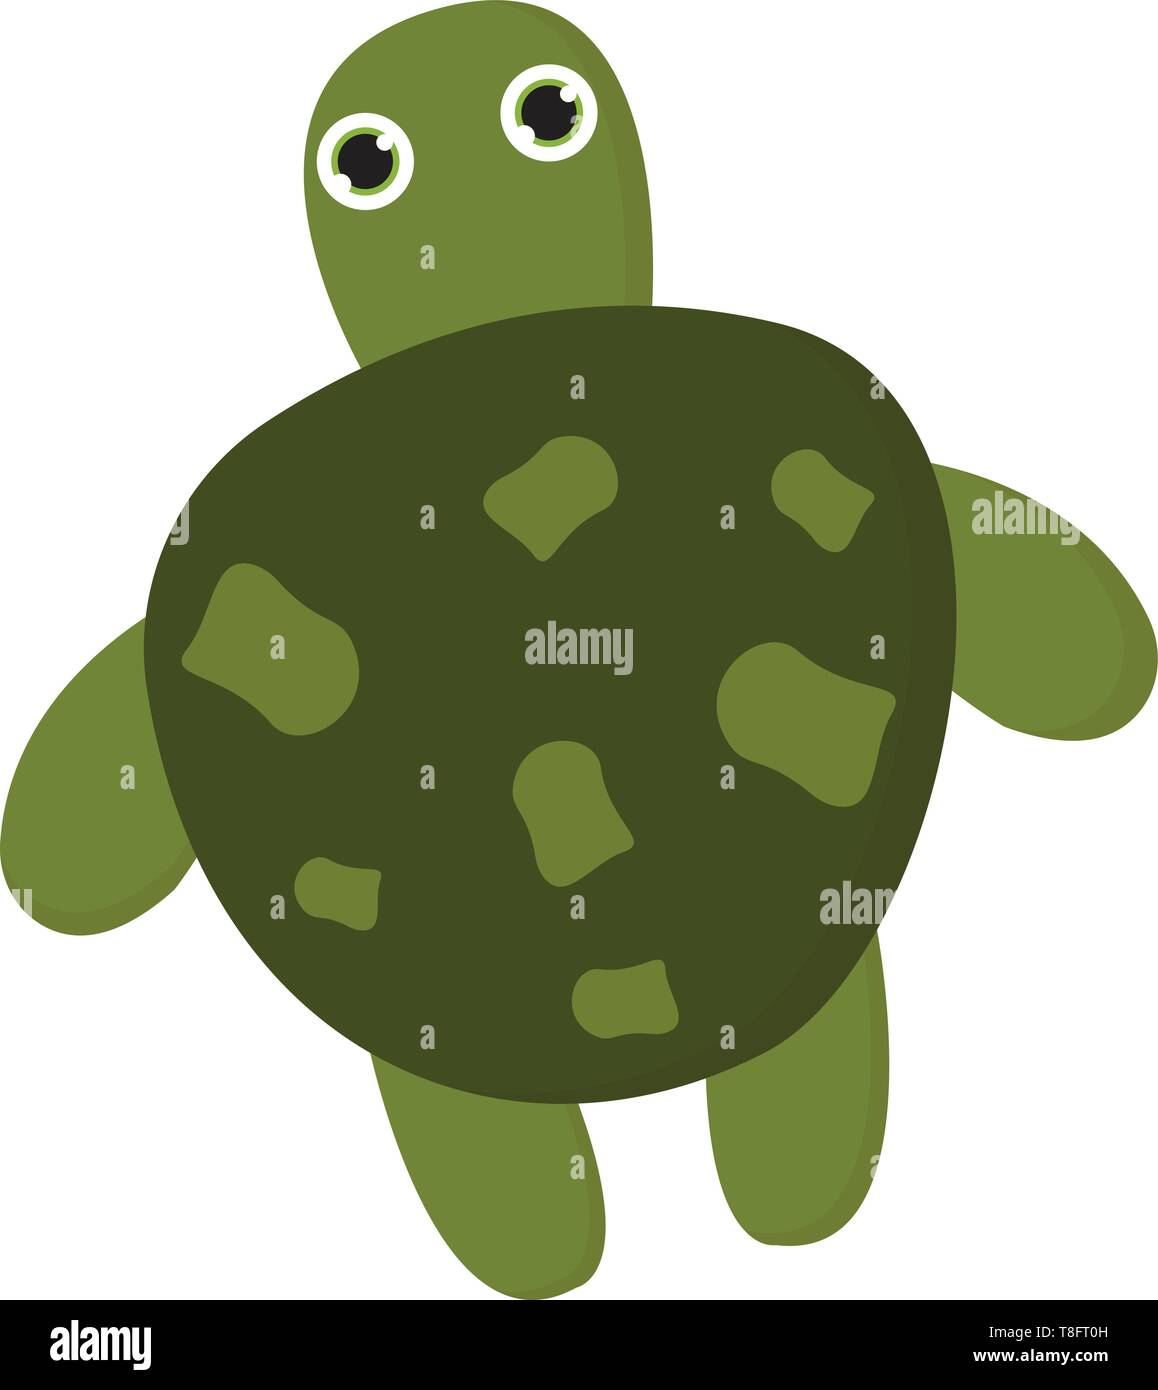 A Cute Turtle Has A Dark Green Shell Or Shield With Patches And